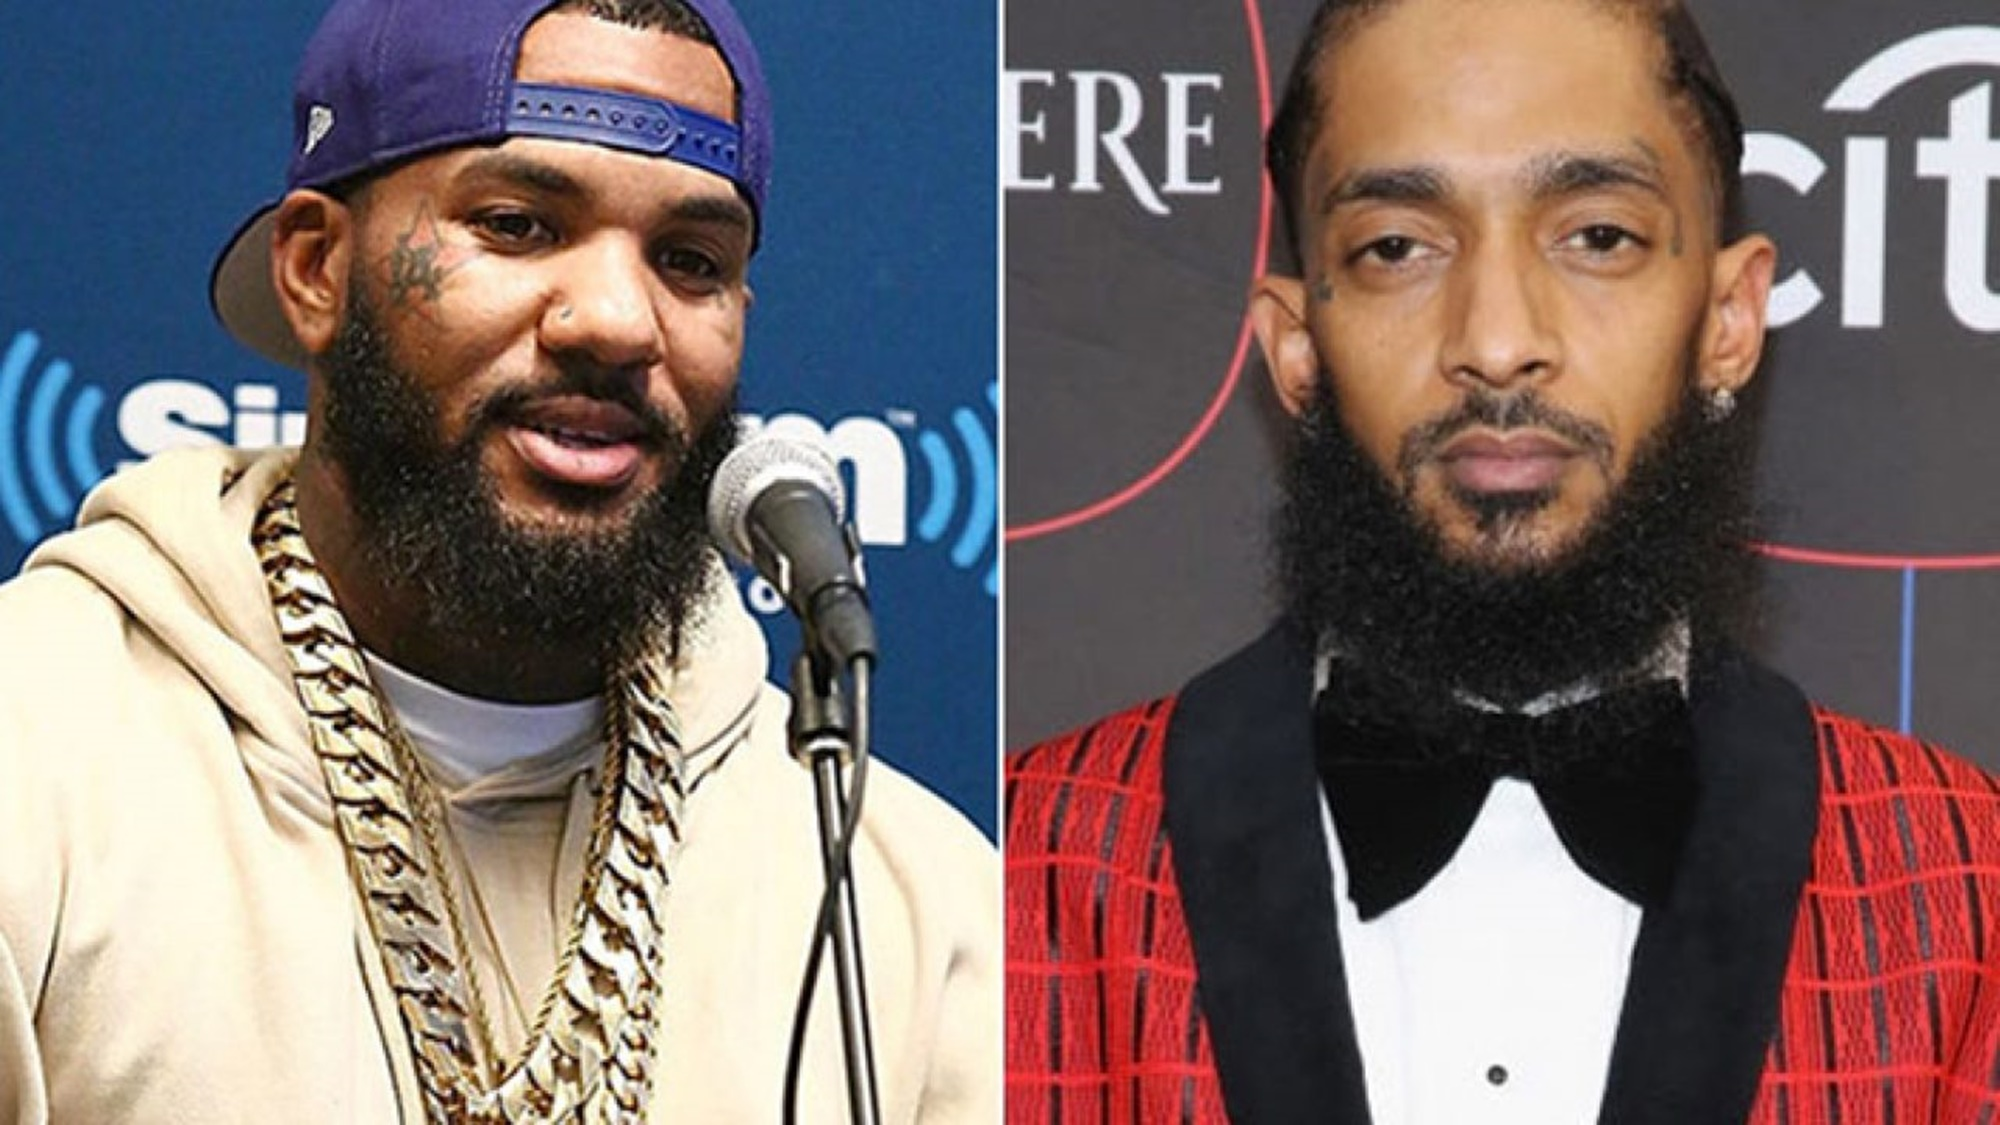 the-game-opens-up-about-the-dark-days-he-faces-since-nipsey-hussles-death-also-addresses-haters-who-say-he-needs-to-move-on-and-leave-lauren-londons-late-boyfriend-rest-in-peace